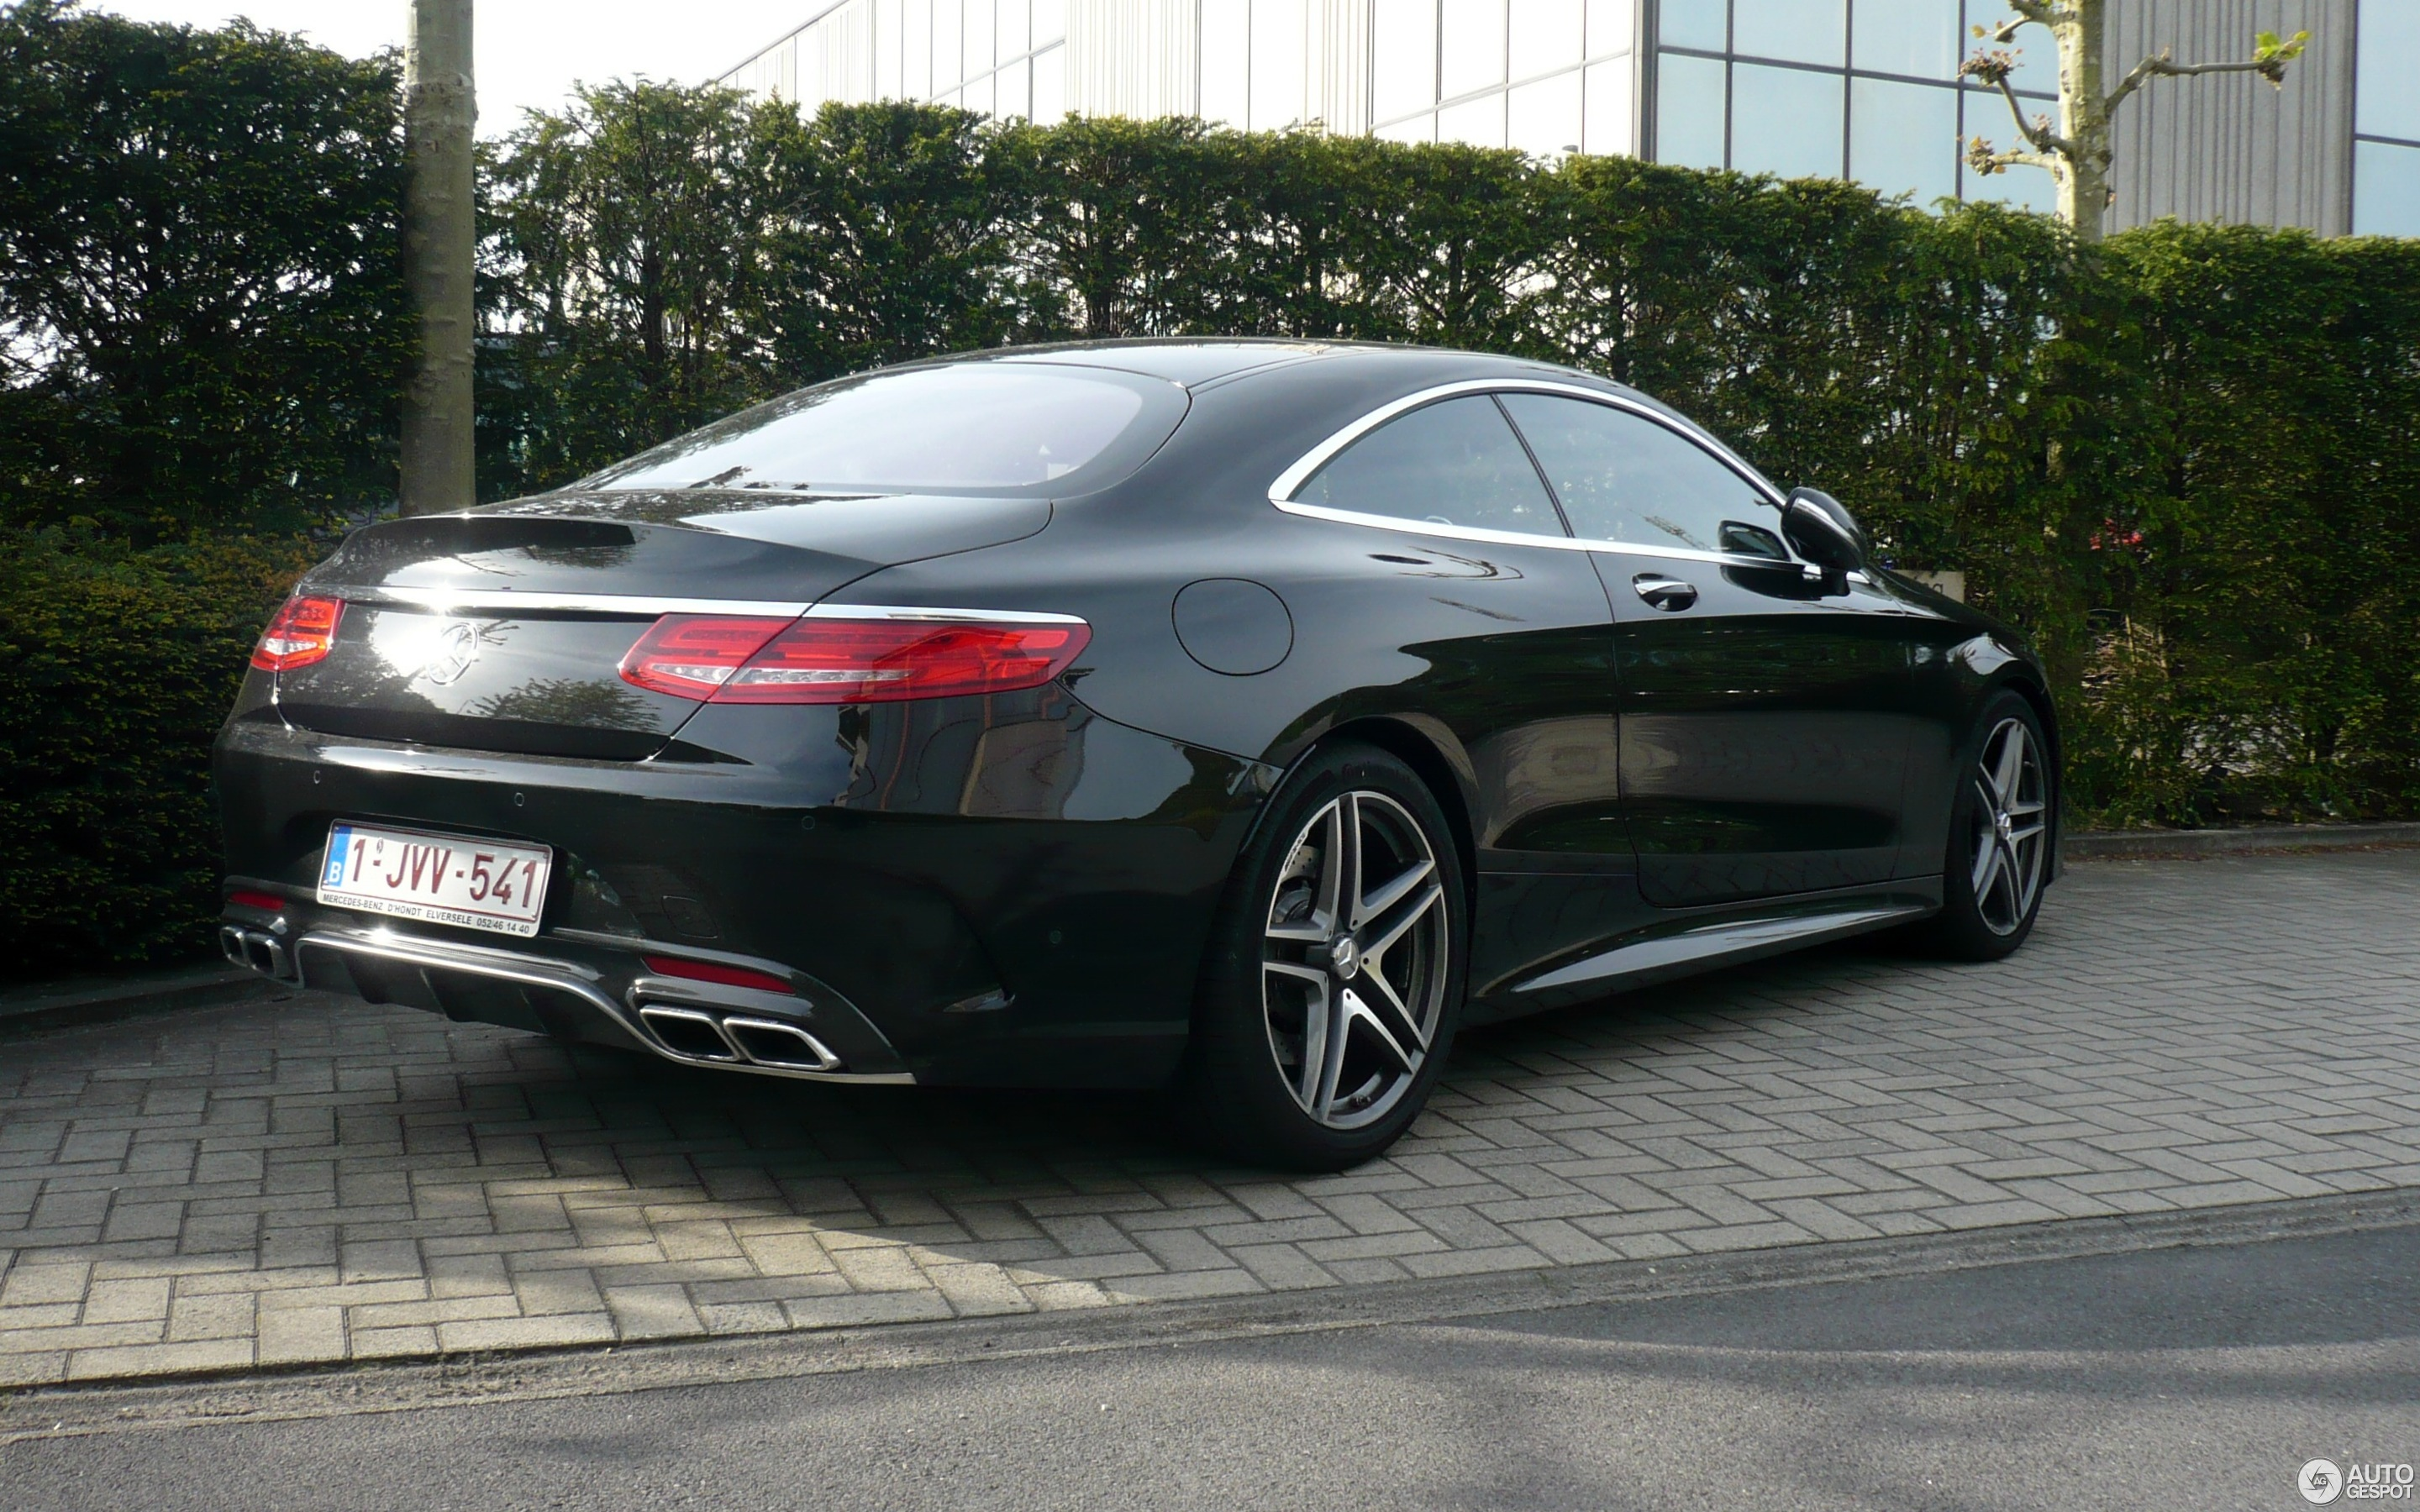 Mercedes Benz S 63 AMG Coupé C217 11 May 2015 Autogespot